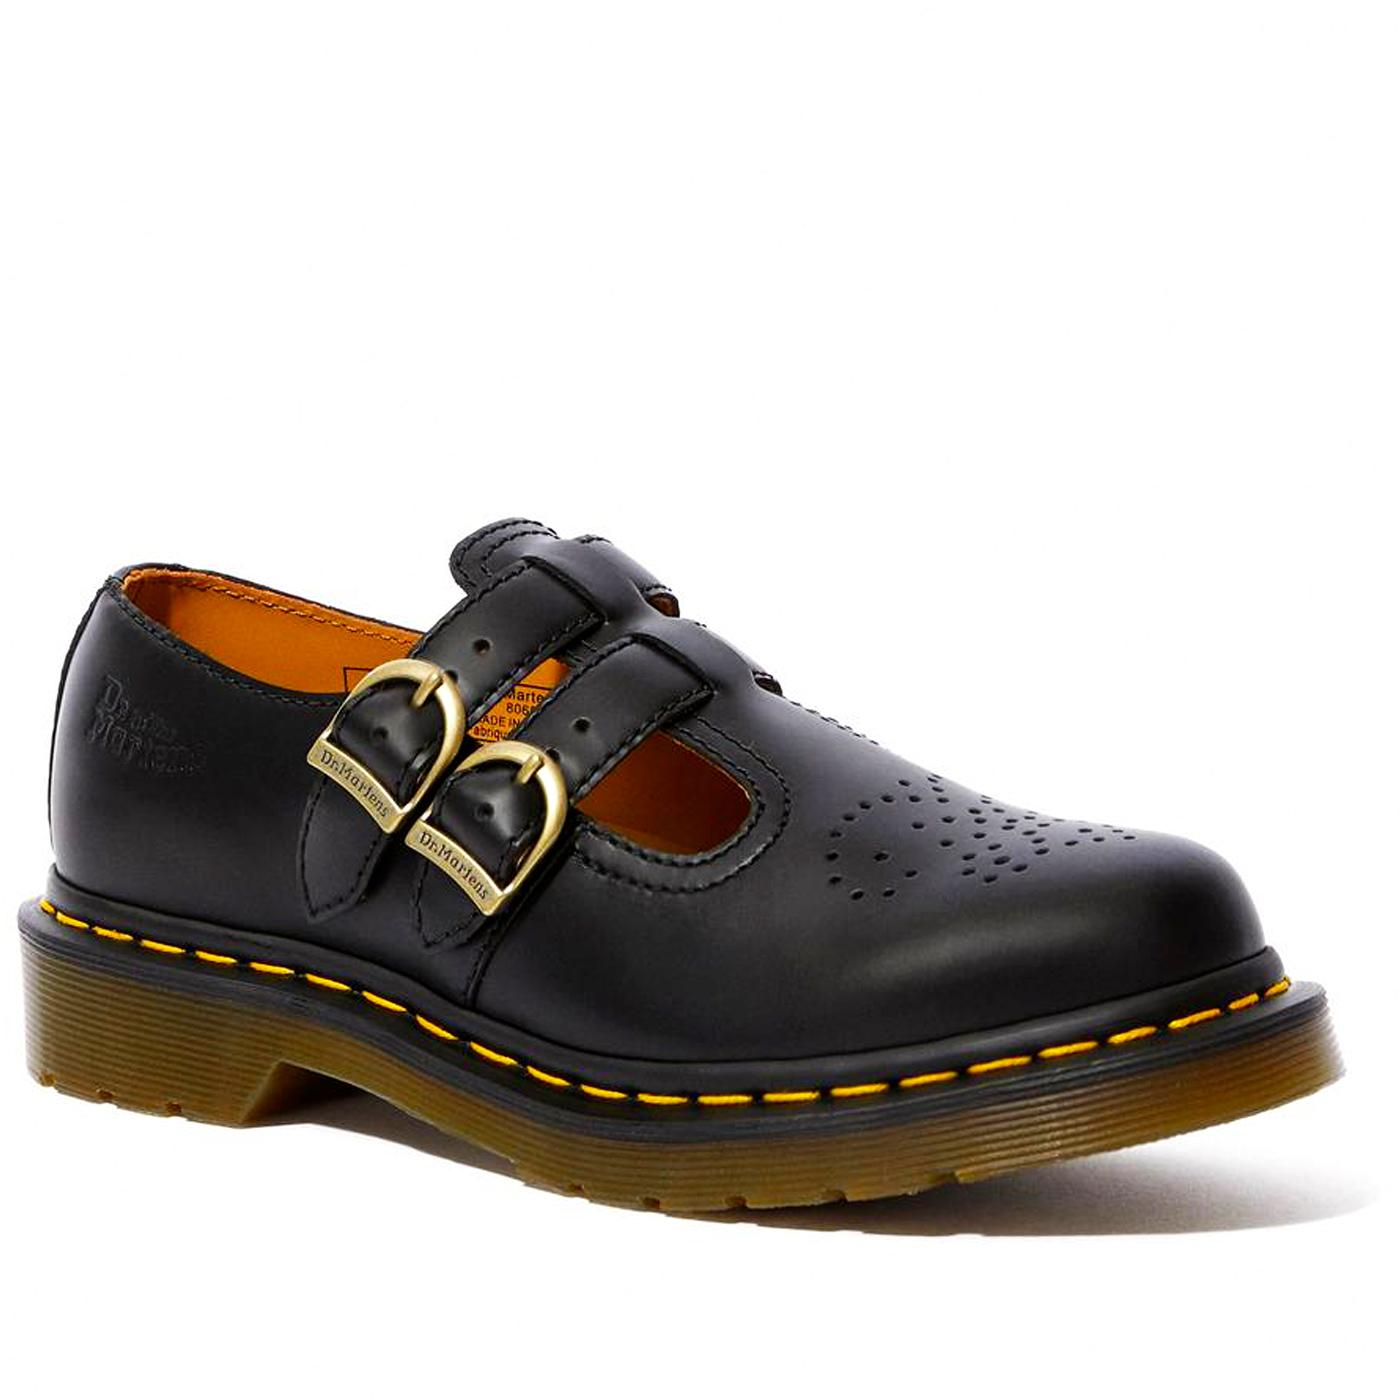 DR MARTENS 8065 Mary Jane 60s Mod Shoes (Black)